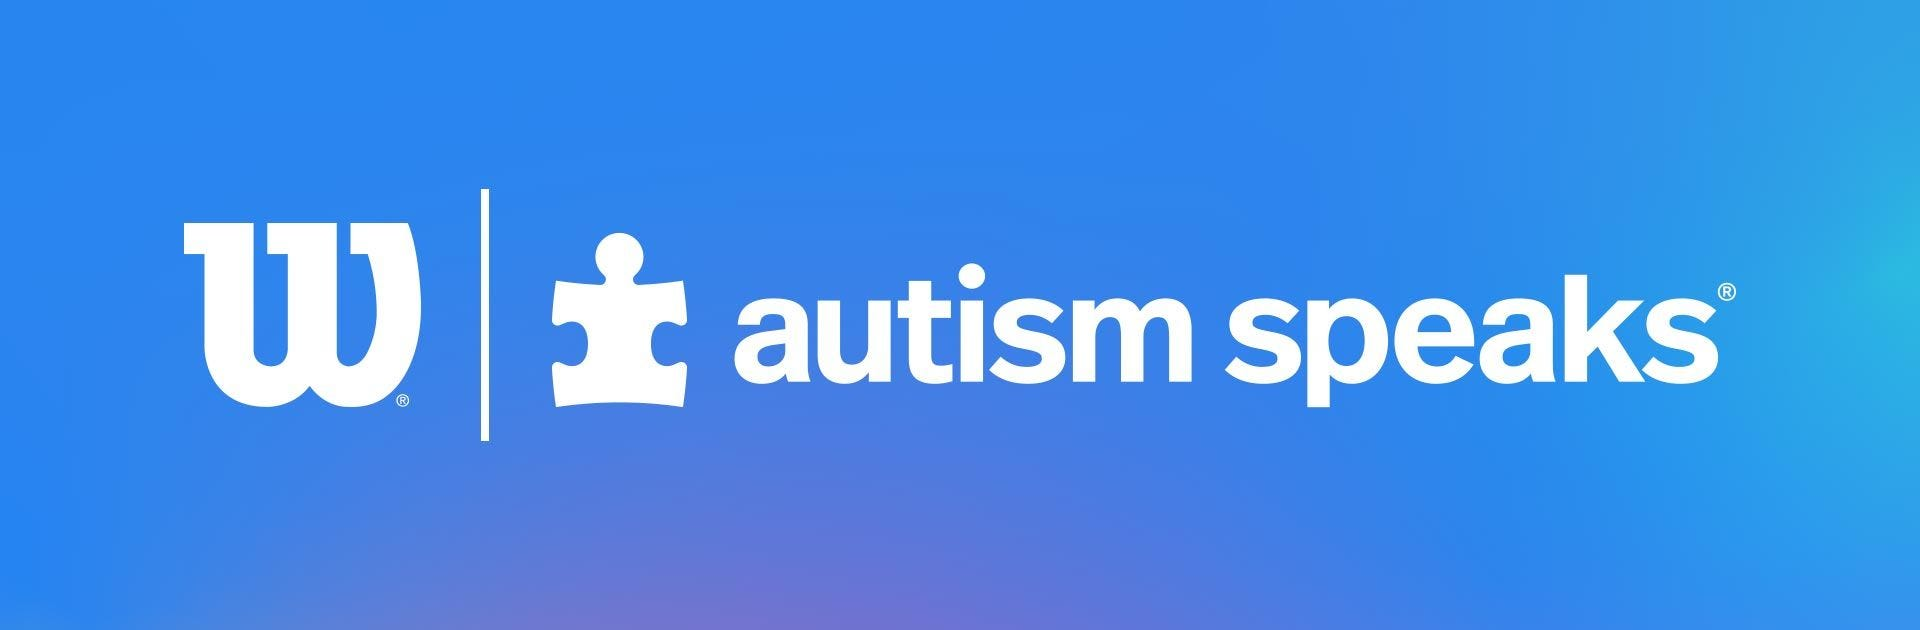 Autism Speaks, love the moment collaboration